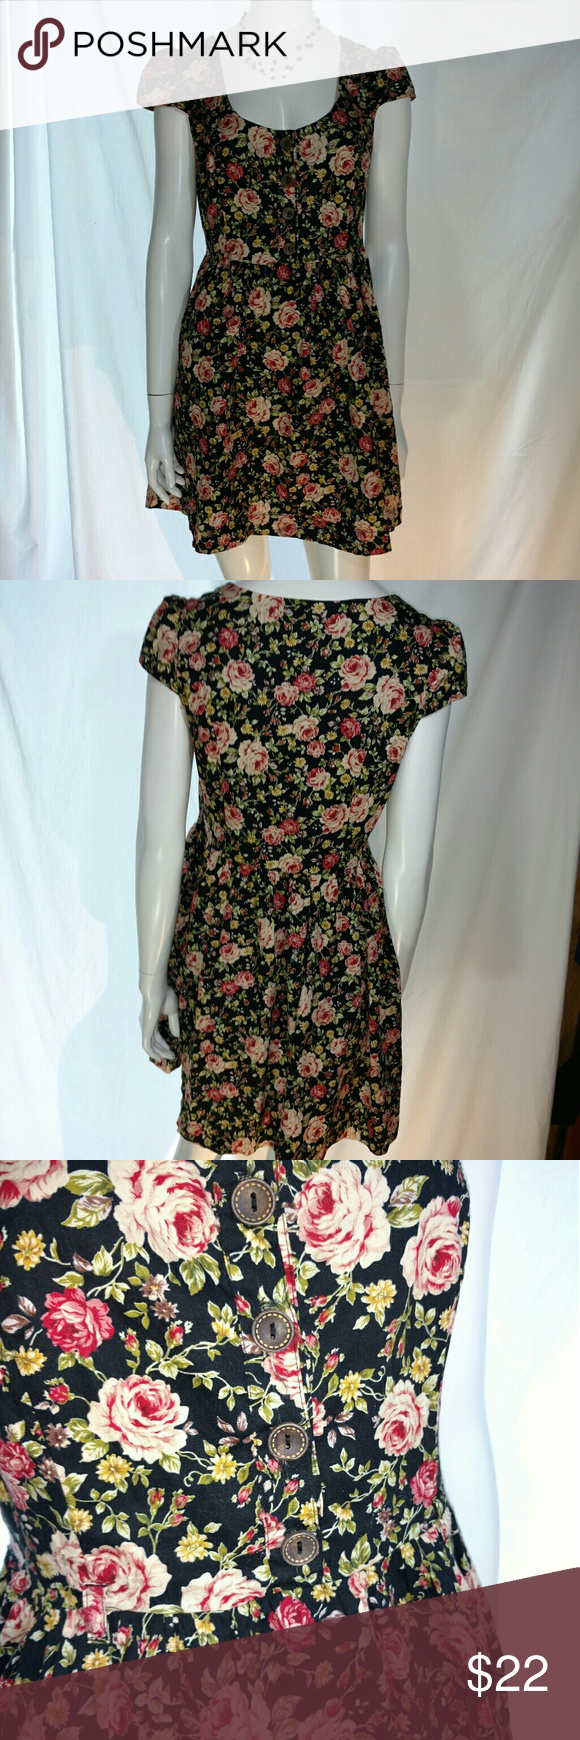 Soldmanteau dress mini button front l pinterest pink roses